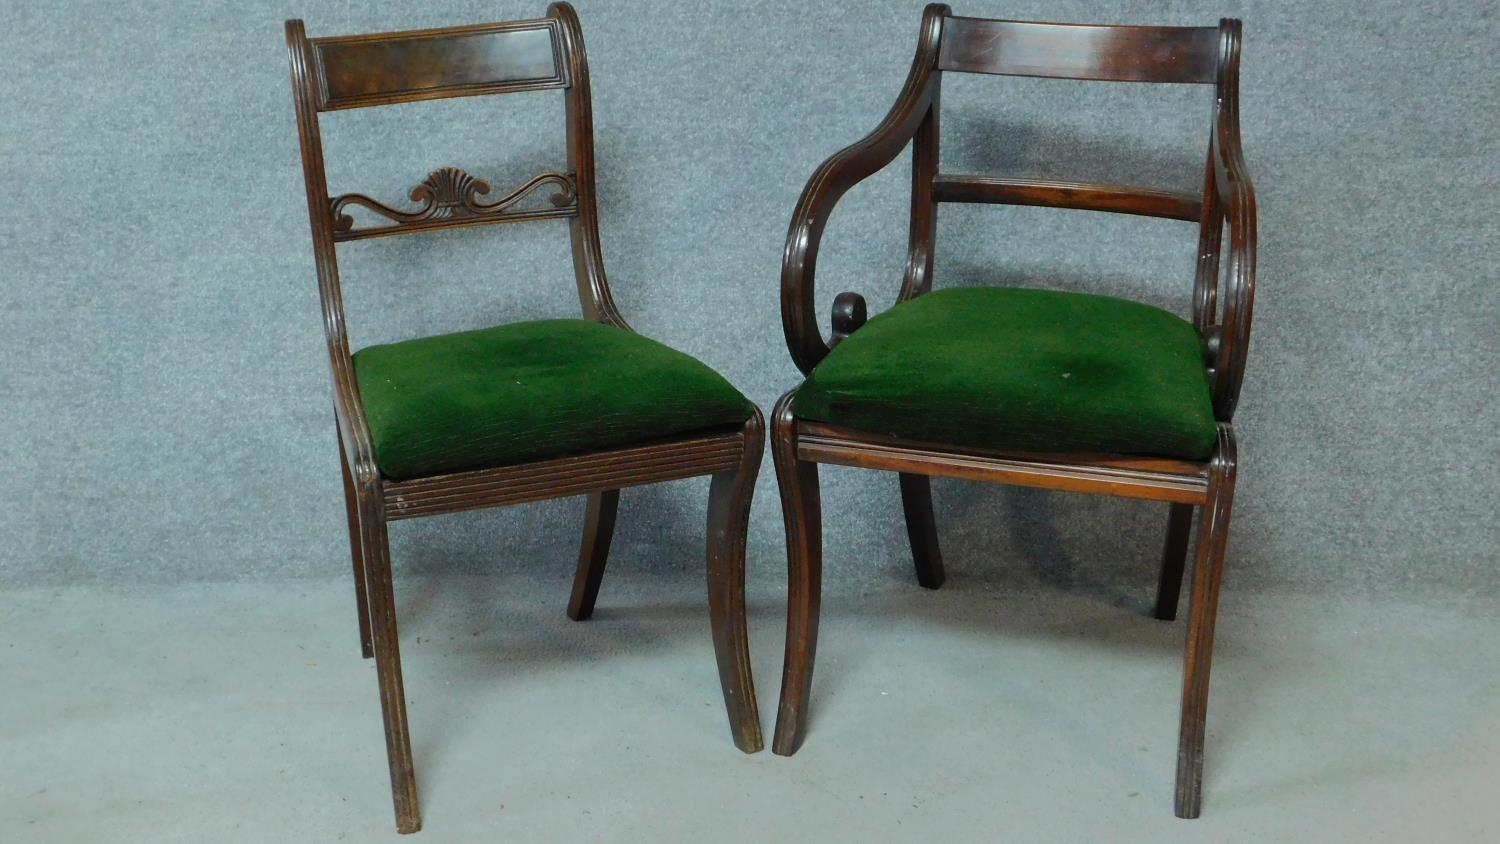 A set of five Regency mahogany dining chairs on sabre supports together with a Regency style - Image 2 of 6